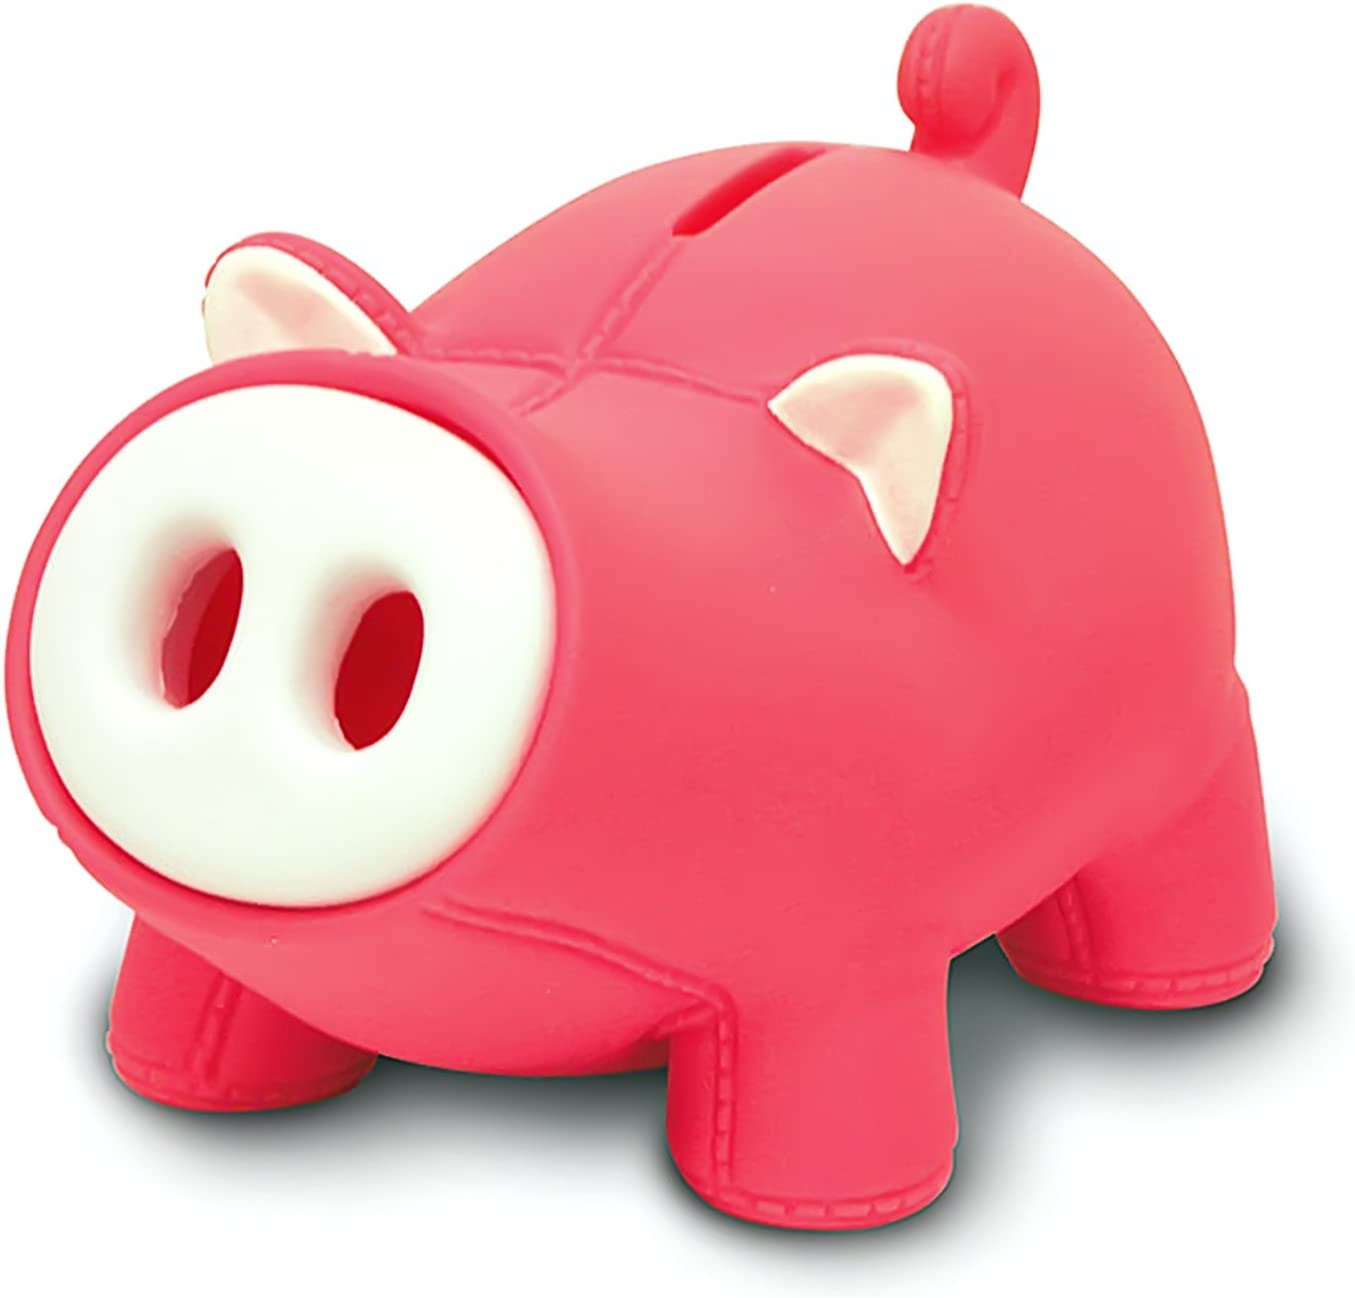 Cute Pig Piggy Bank,Lovely Pig Bank Toy Coin Bank Decorative Saving Bank Money Bank Adorable Pig Figurine for Boy Girl Baby Kid Child Adult Pig Lover by DomeStar